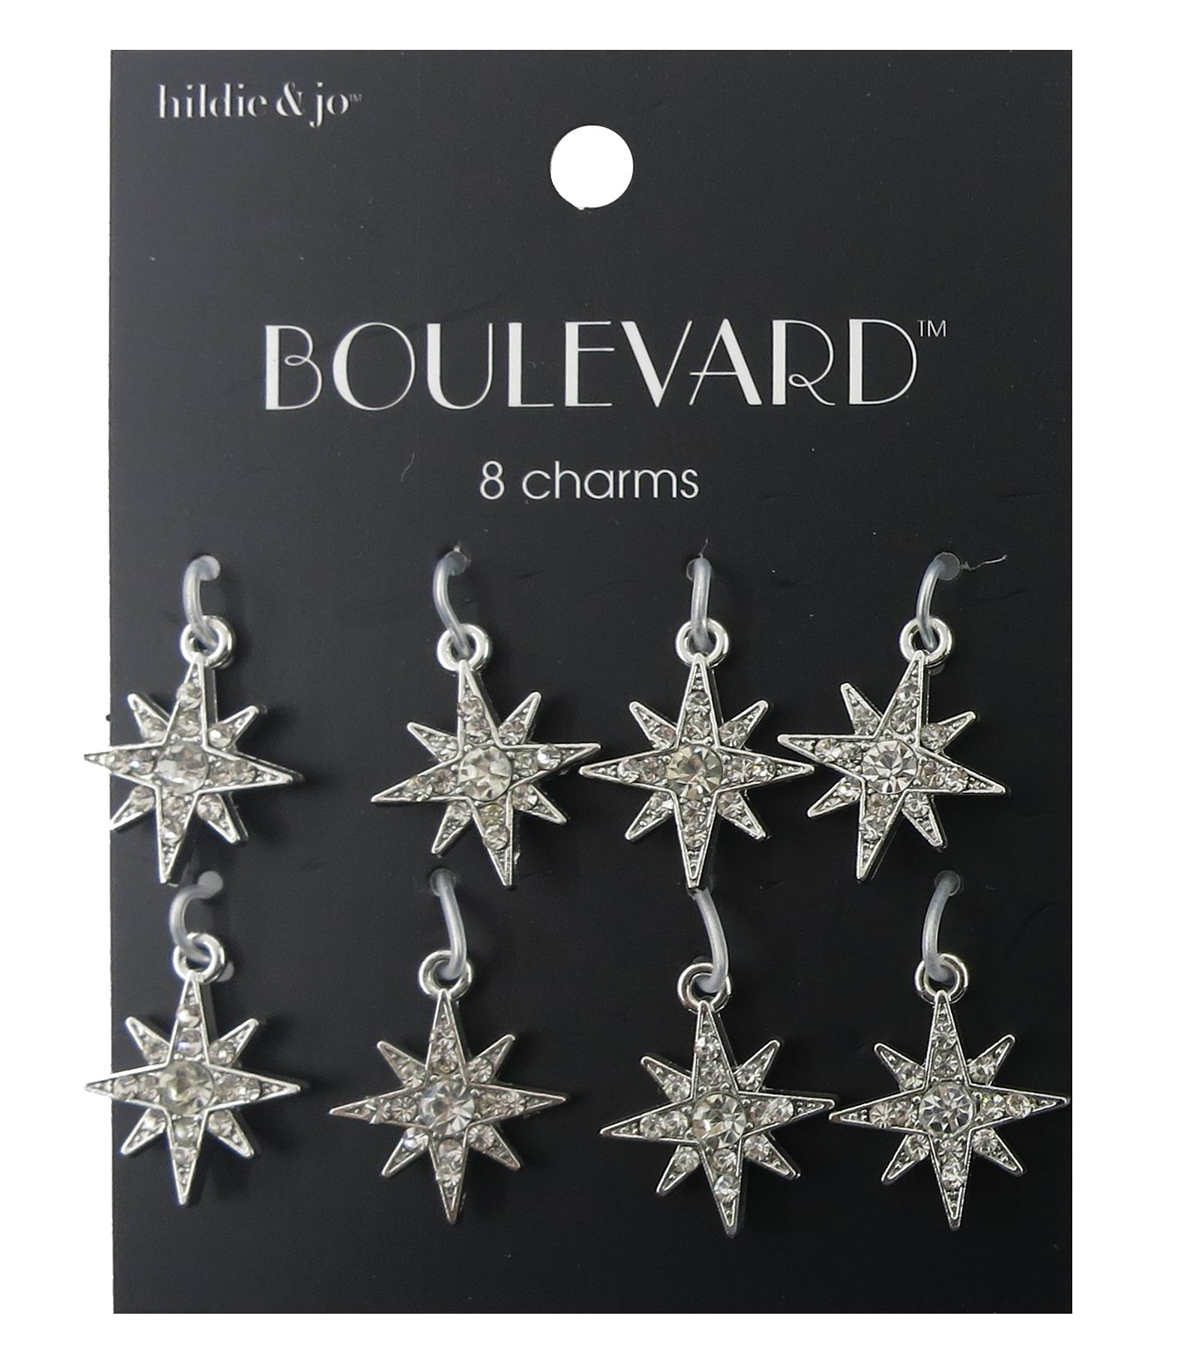 hildie & jo Boulevard 8 Point Star Silver Charms-Clear Crystals